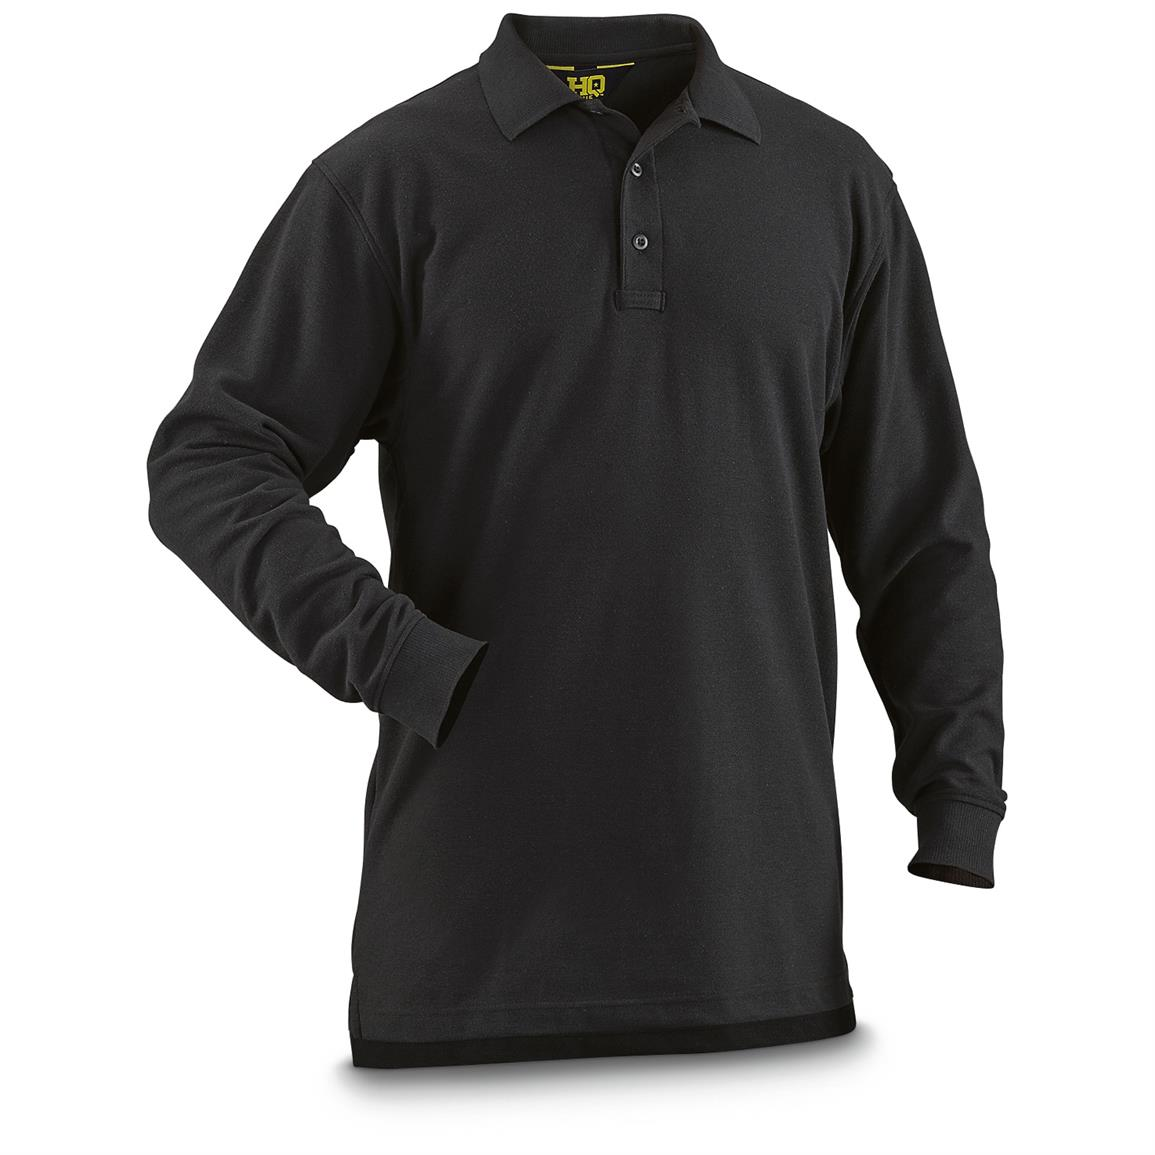 HQ ISSUE Men's Long-Sleeve Tactical Polo Shirt, Black